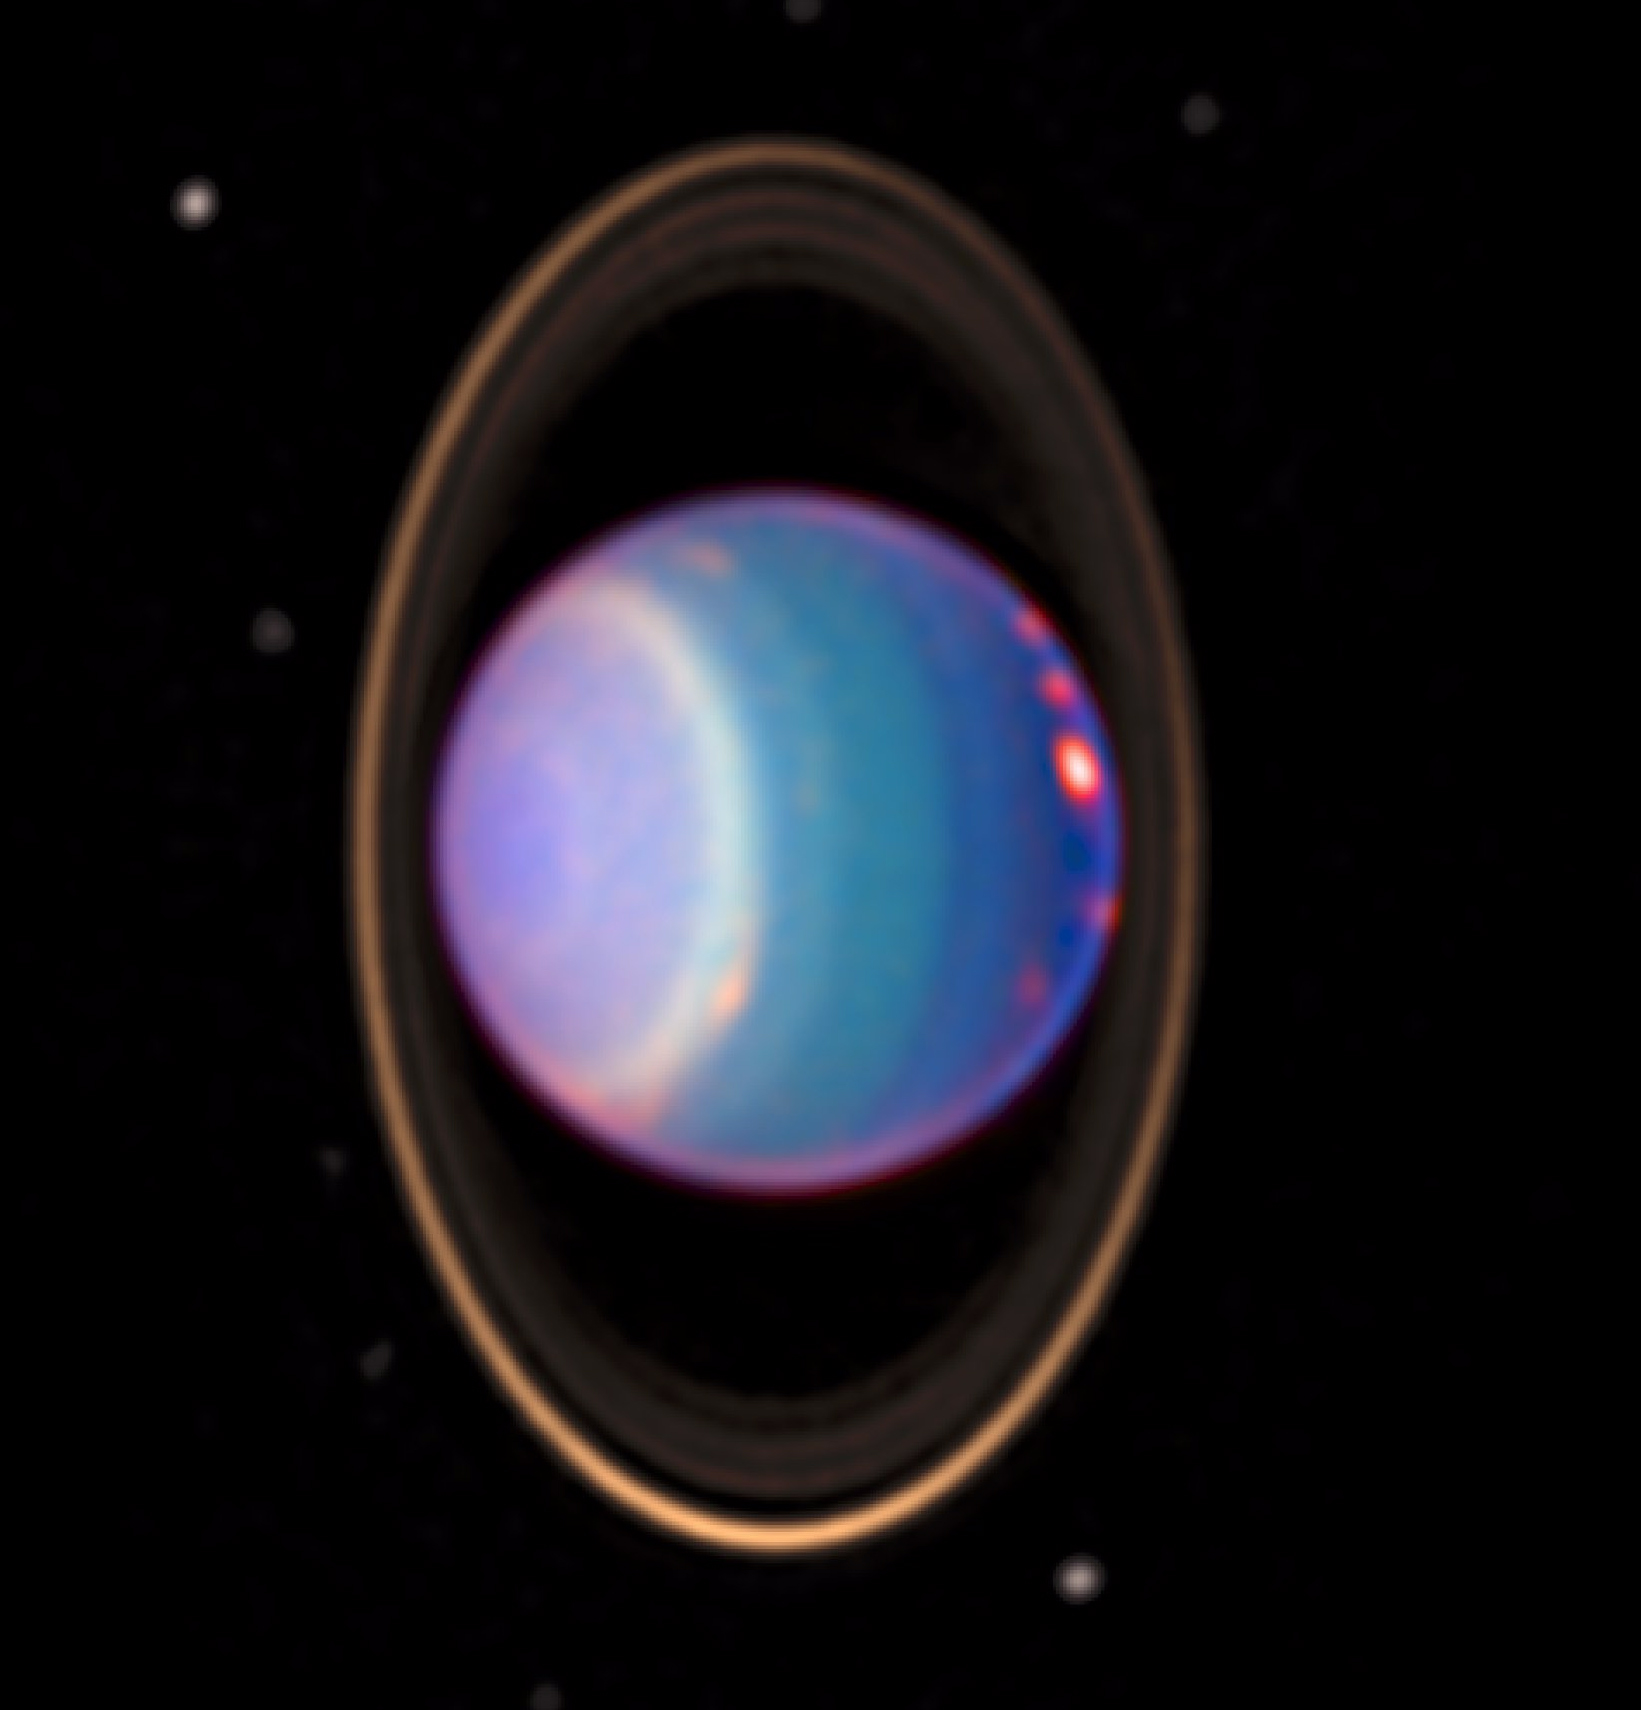 nasa photos of uranus - photo #28